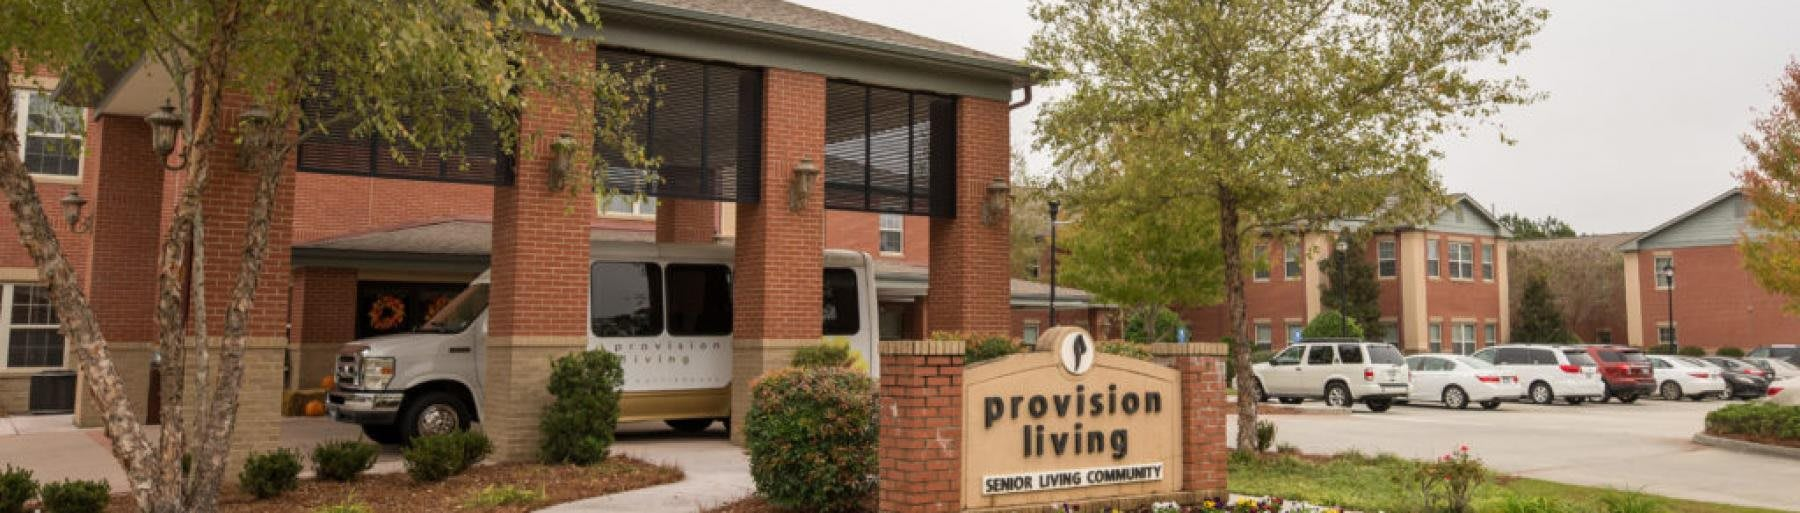 Photo 1 of Provision Living at Hattiesburg